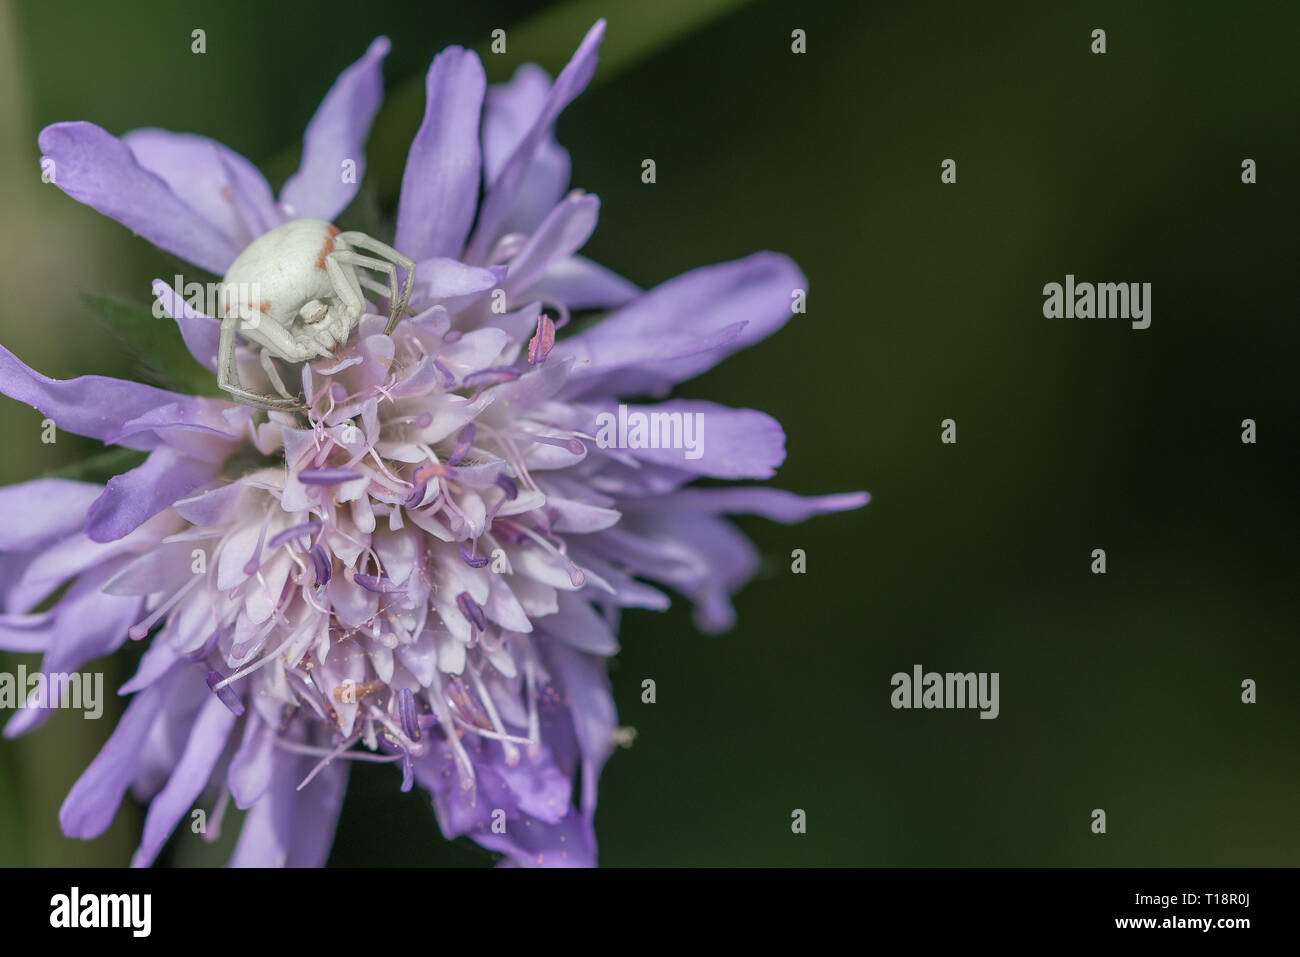 Comb-footed spider on Scabious flower. - Stock Image